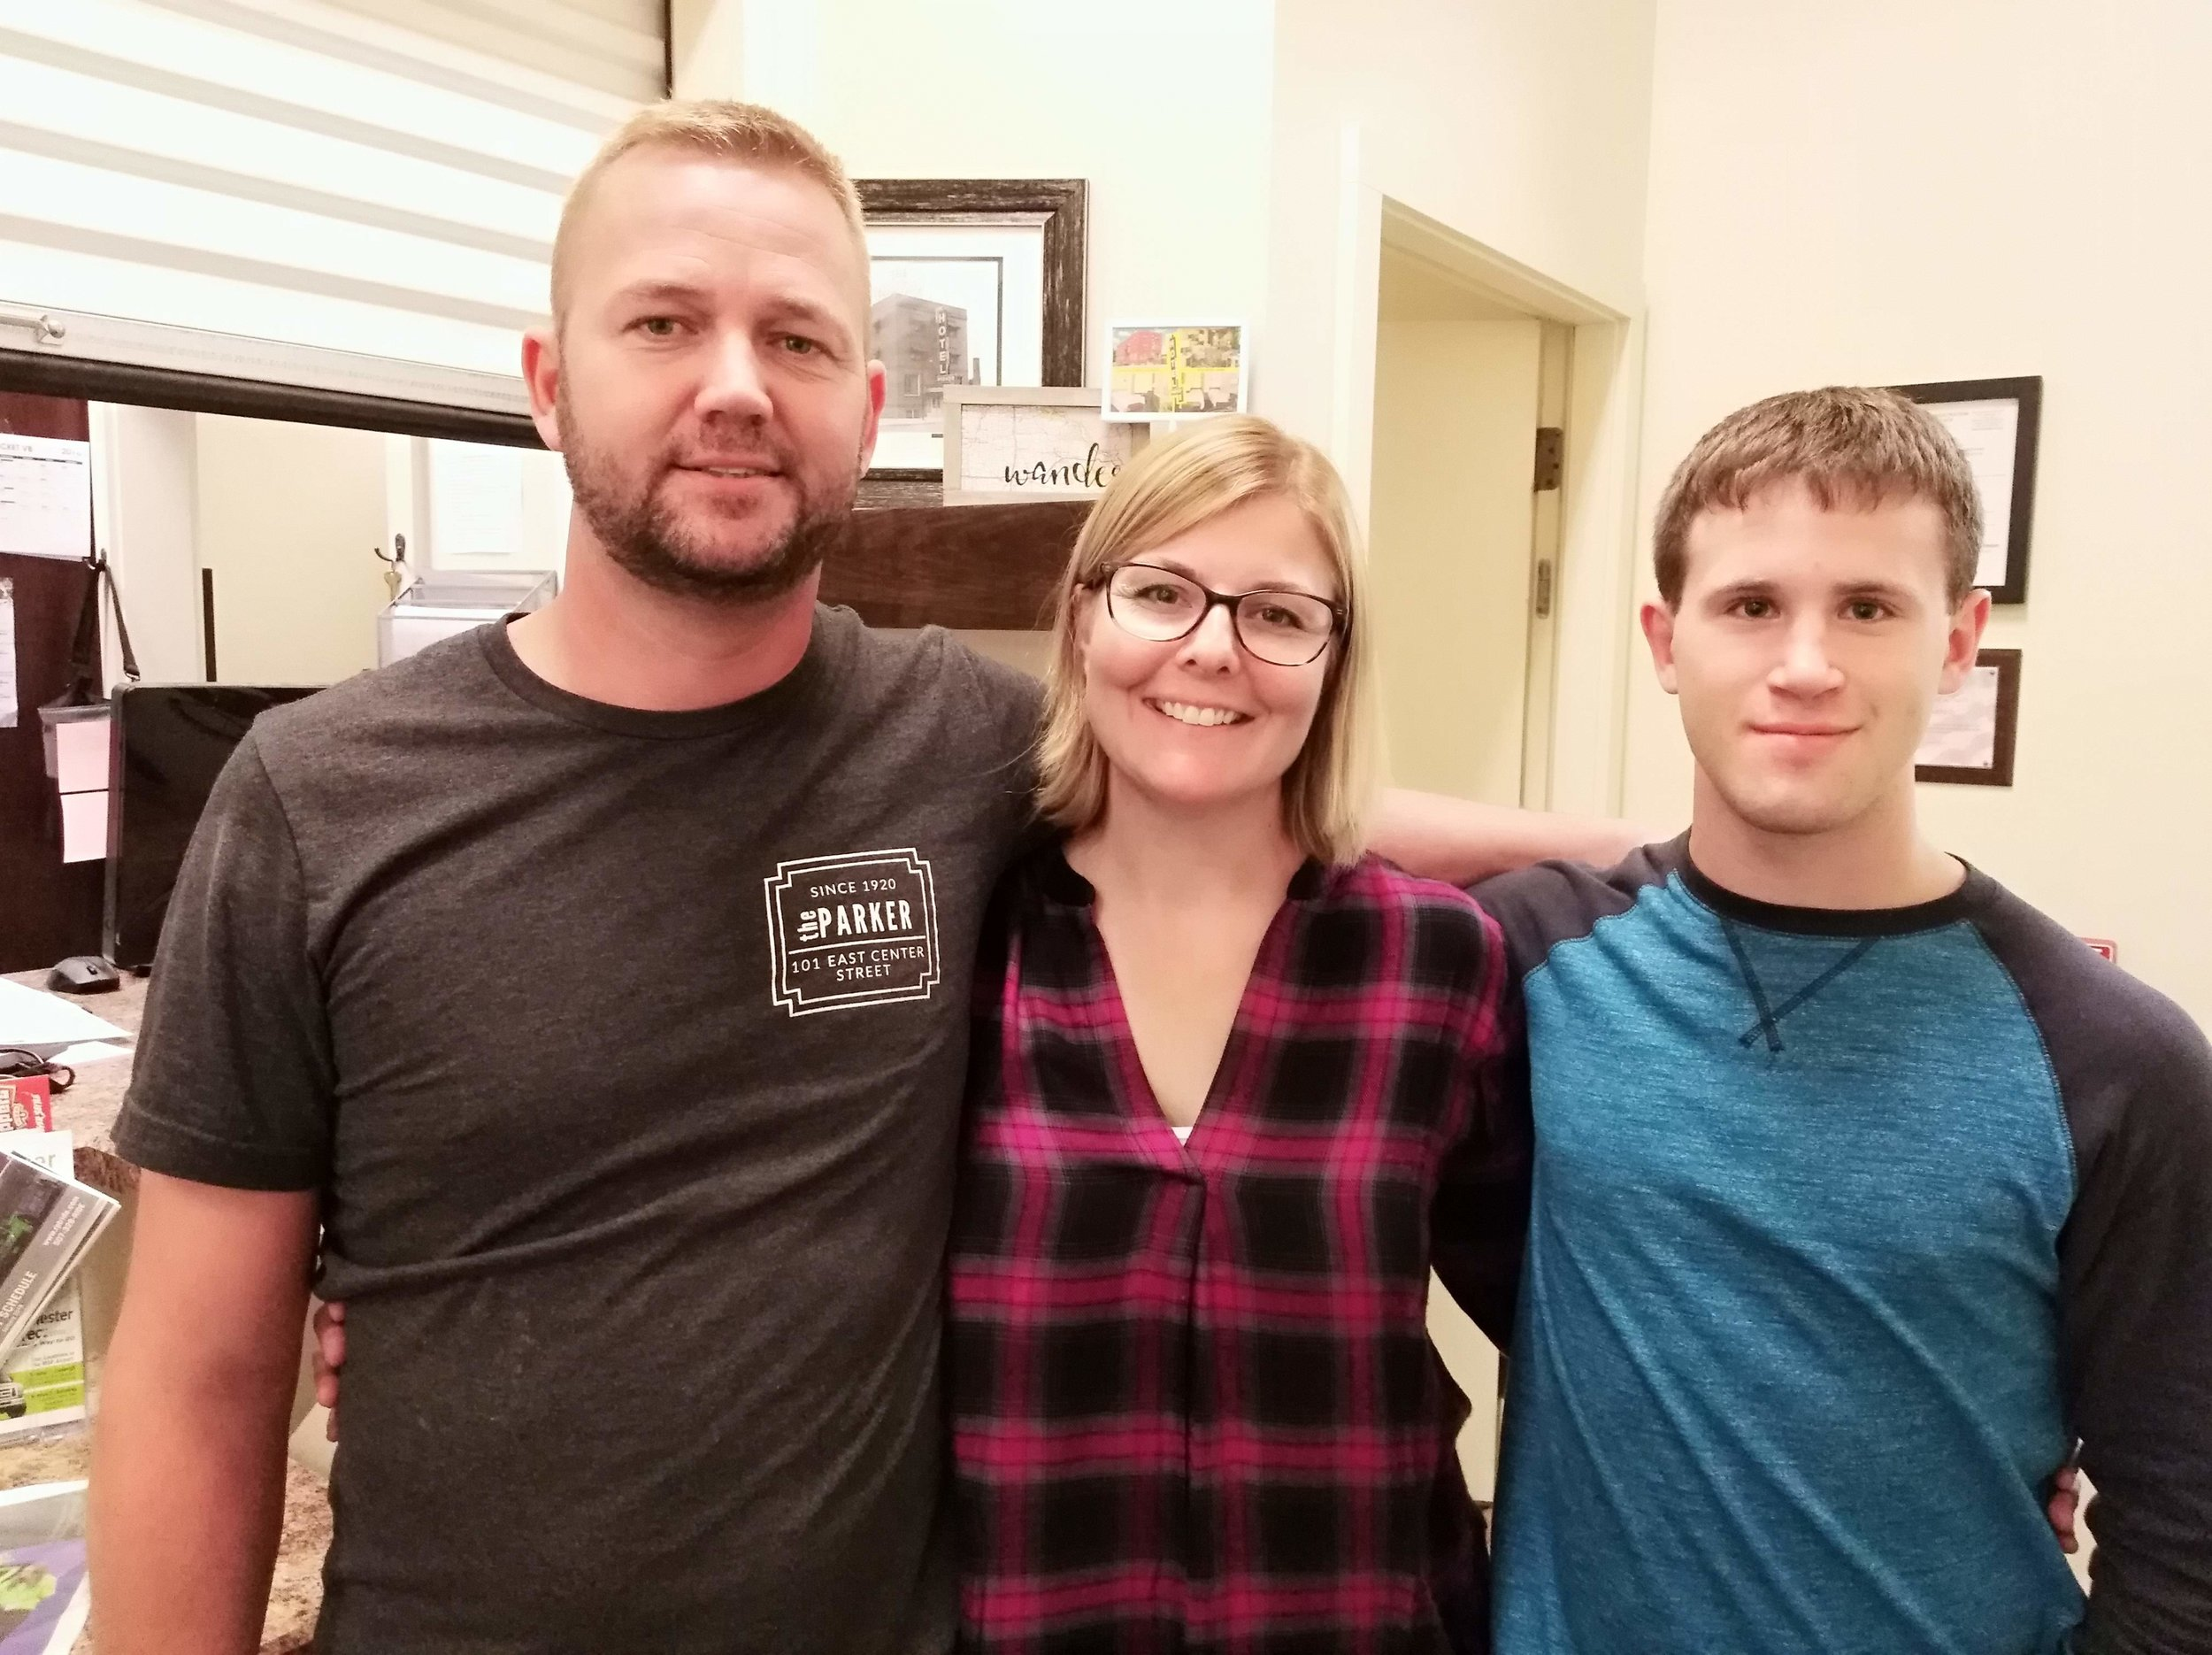 Left to right: Andy, Kari and Jared. Jared helps the couple manage their properties.